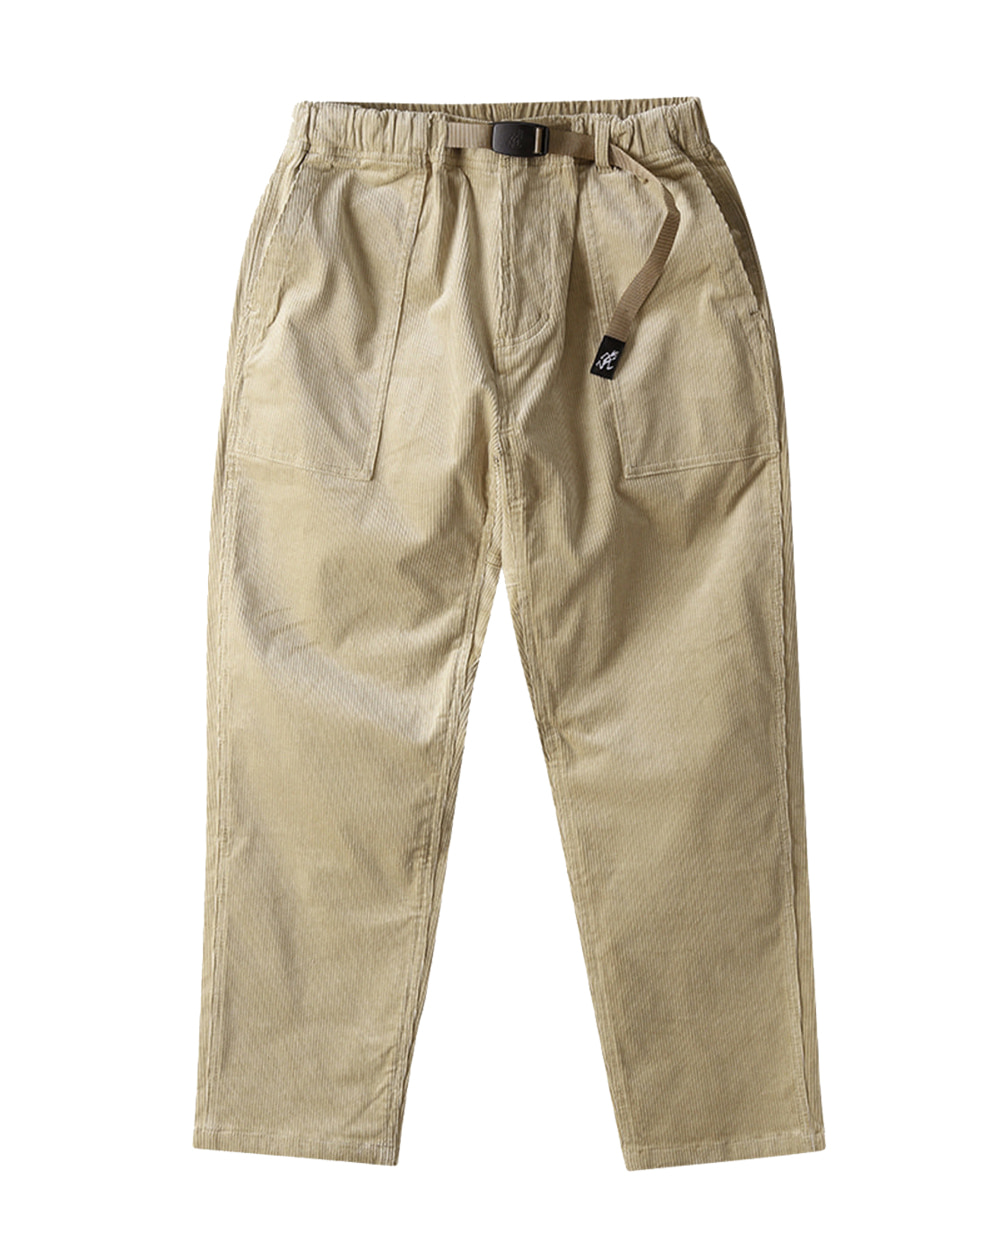 그라미치 CORDUROY LOOSE TAPERED PANTS (Beige)